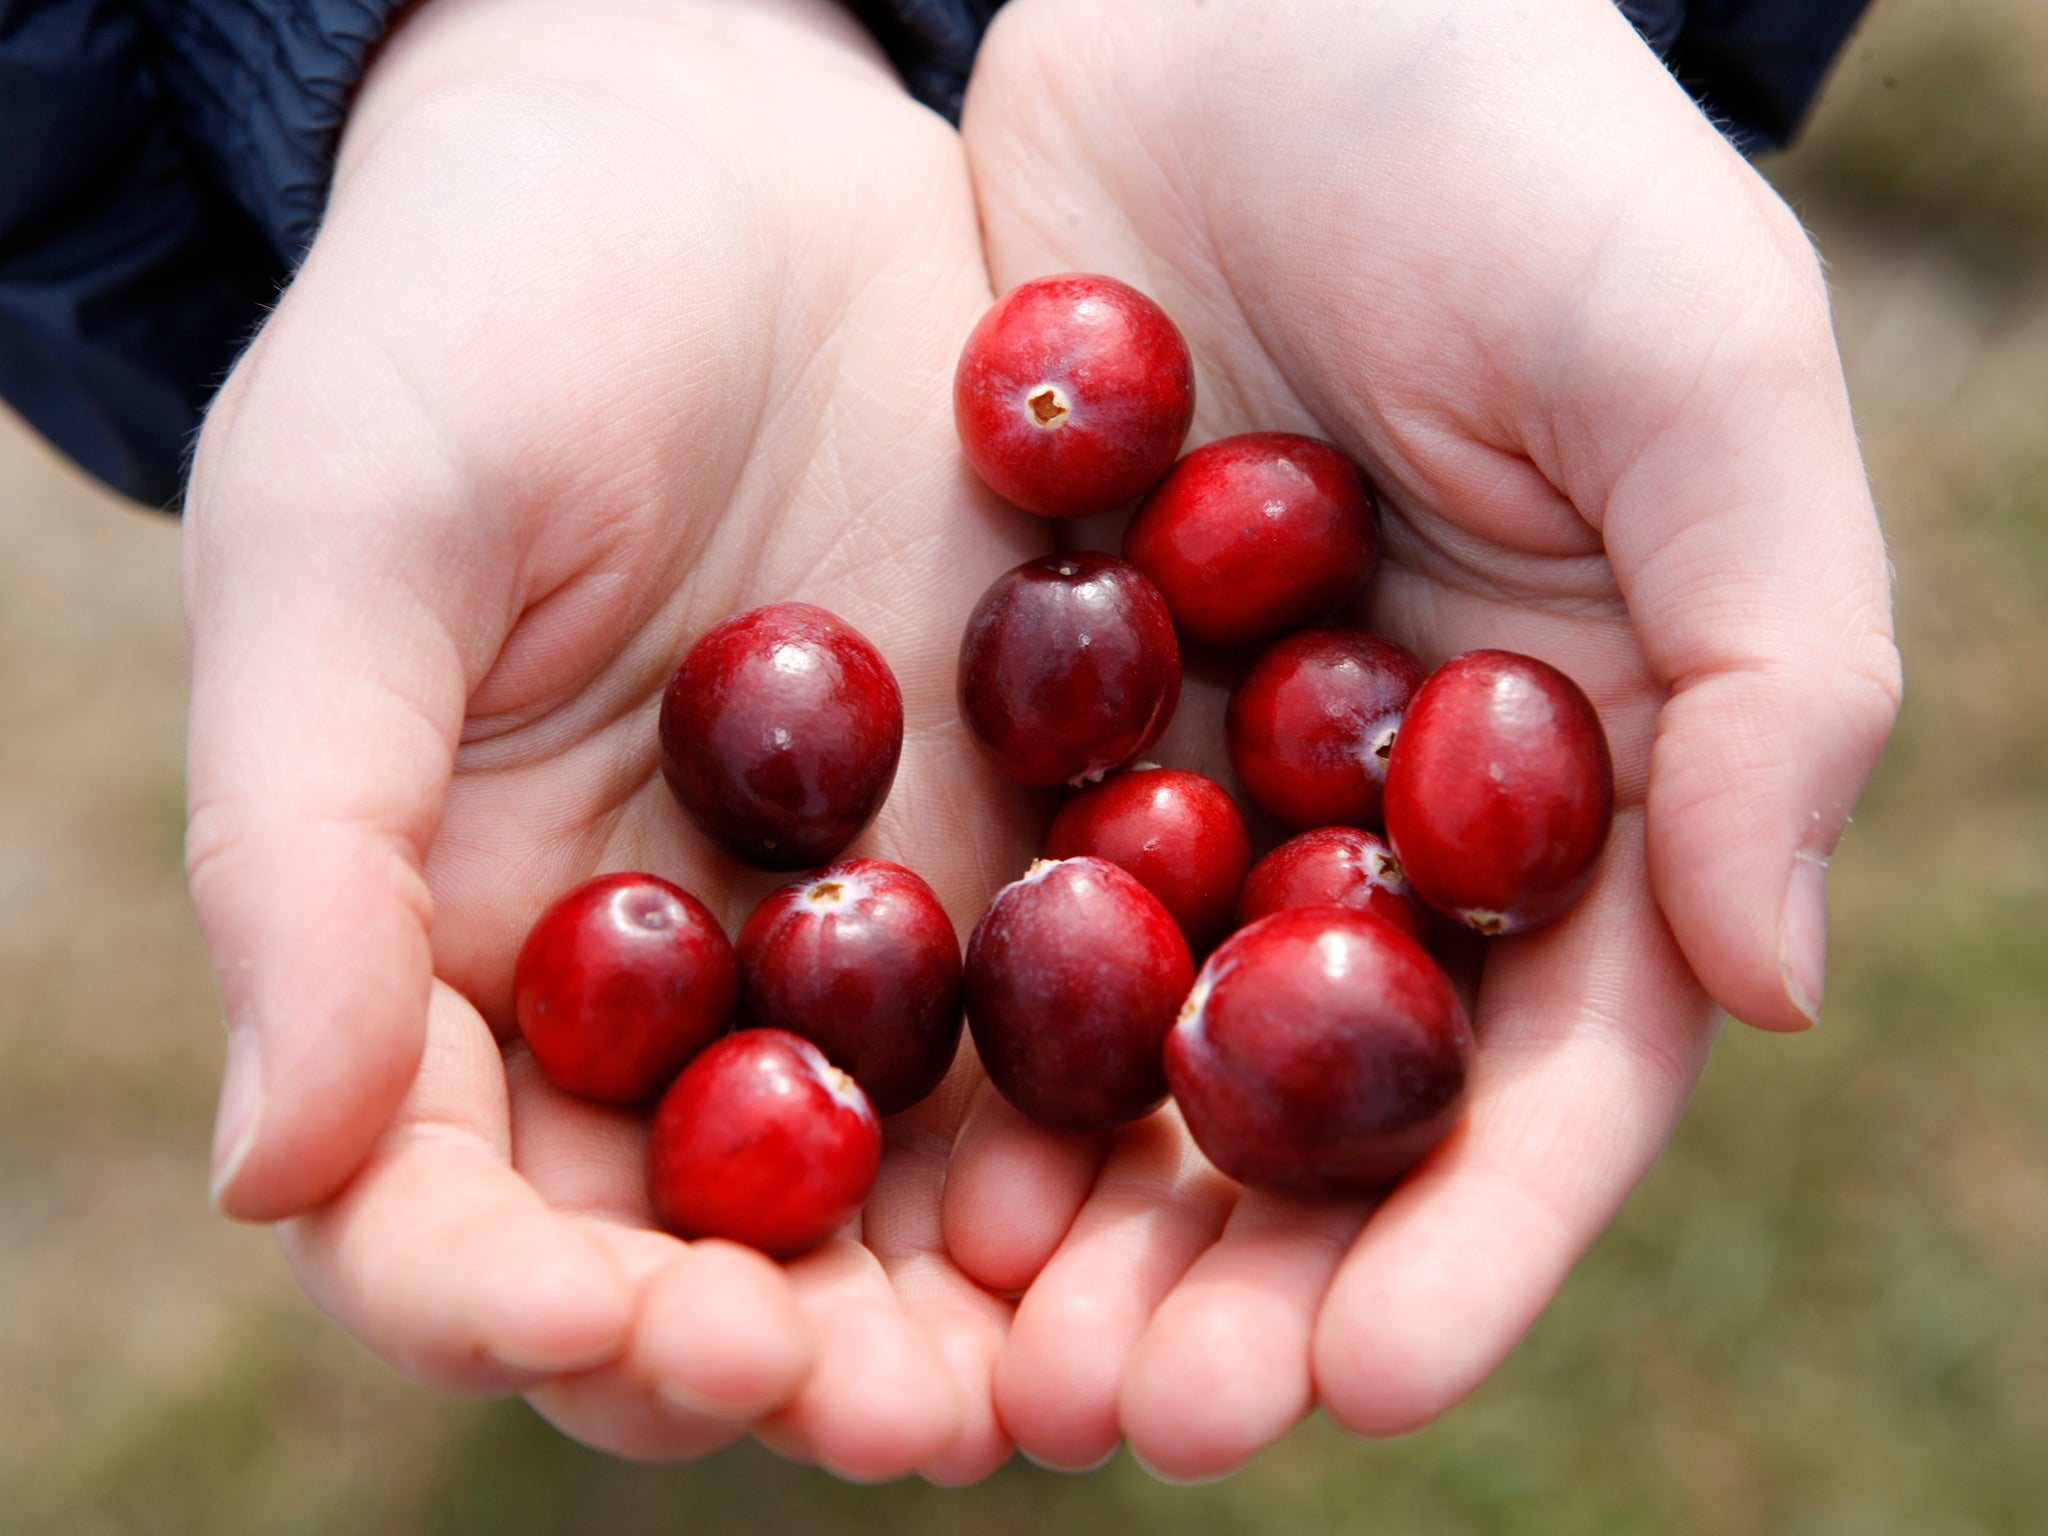 With Thanksgiving and Christmas giving cranberries their